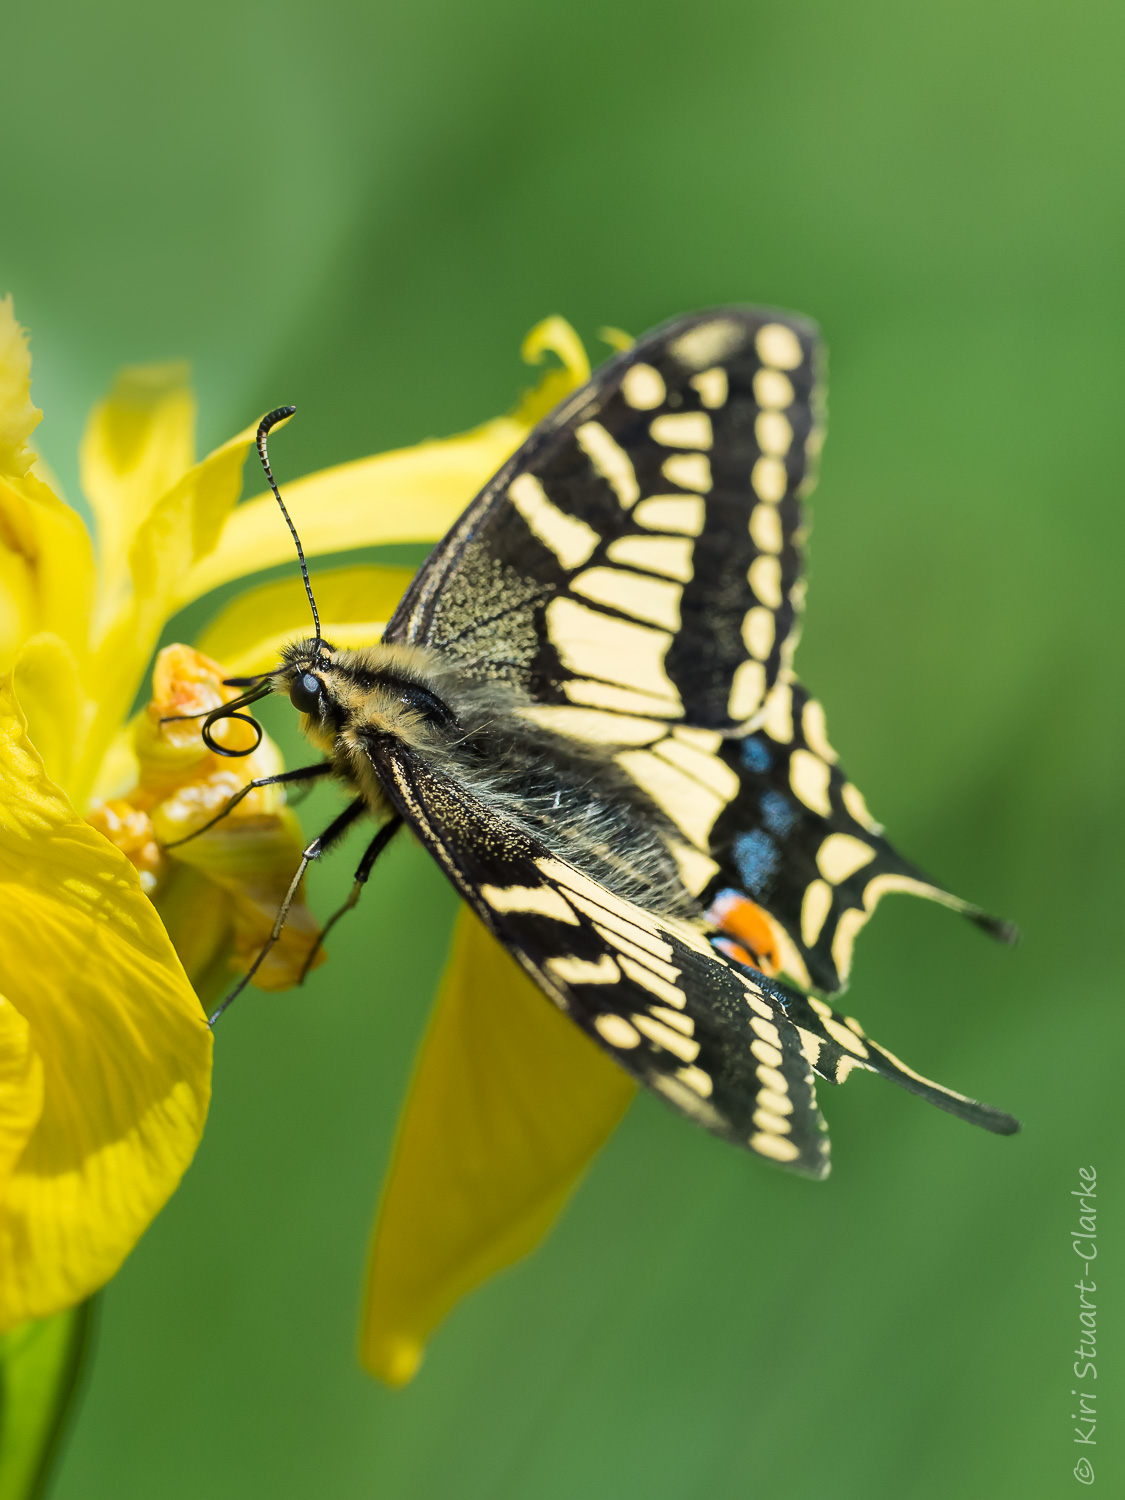 British Swallowtail, found only in Norfolk, busy nectaring on native yellow flag iris flowers. Taken from at least 1.4m away on a 300mm 4/3 crop OMD.